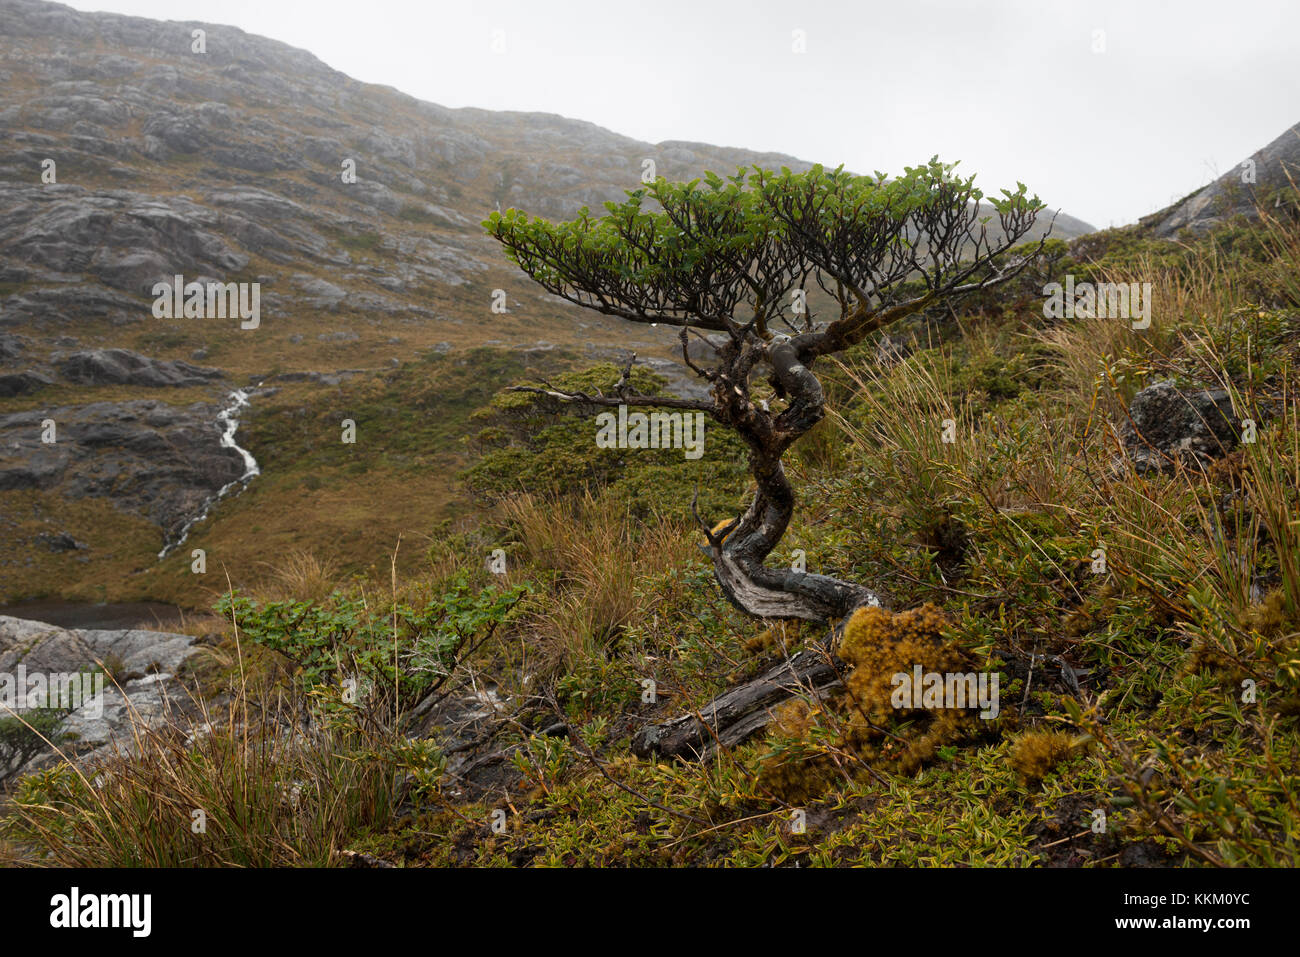 A Wild Bonsai Tree Growing On A Remote Island In The Southern Chilean Stock Photo Alamy